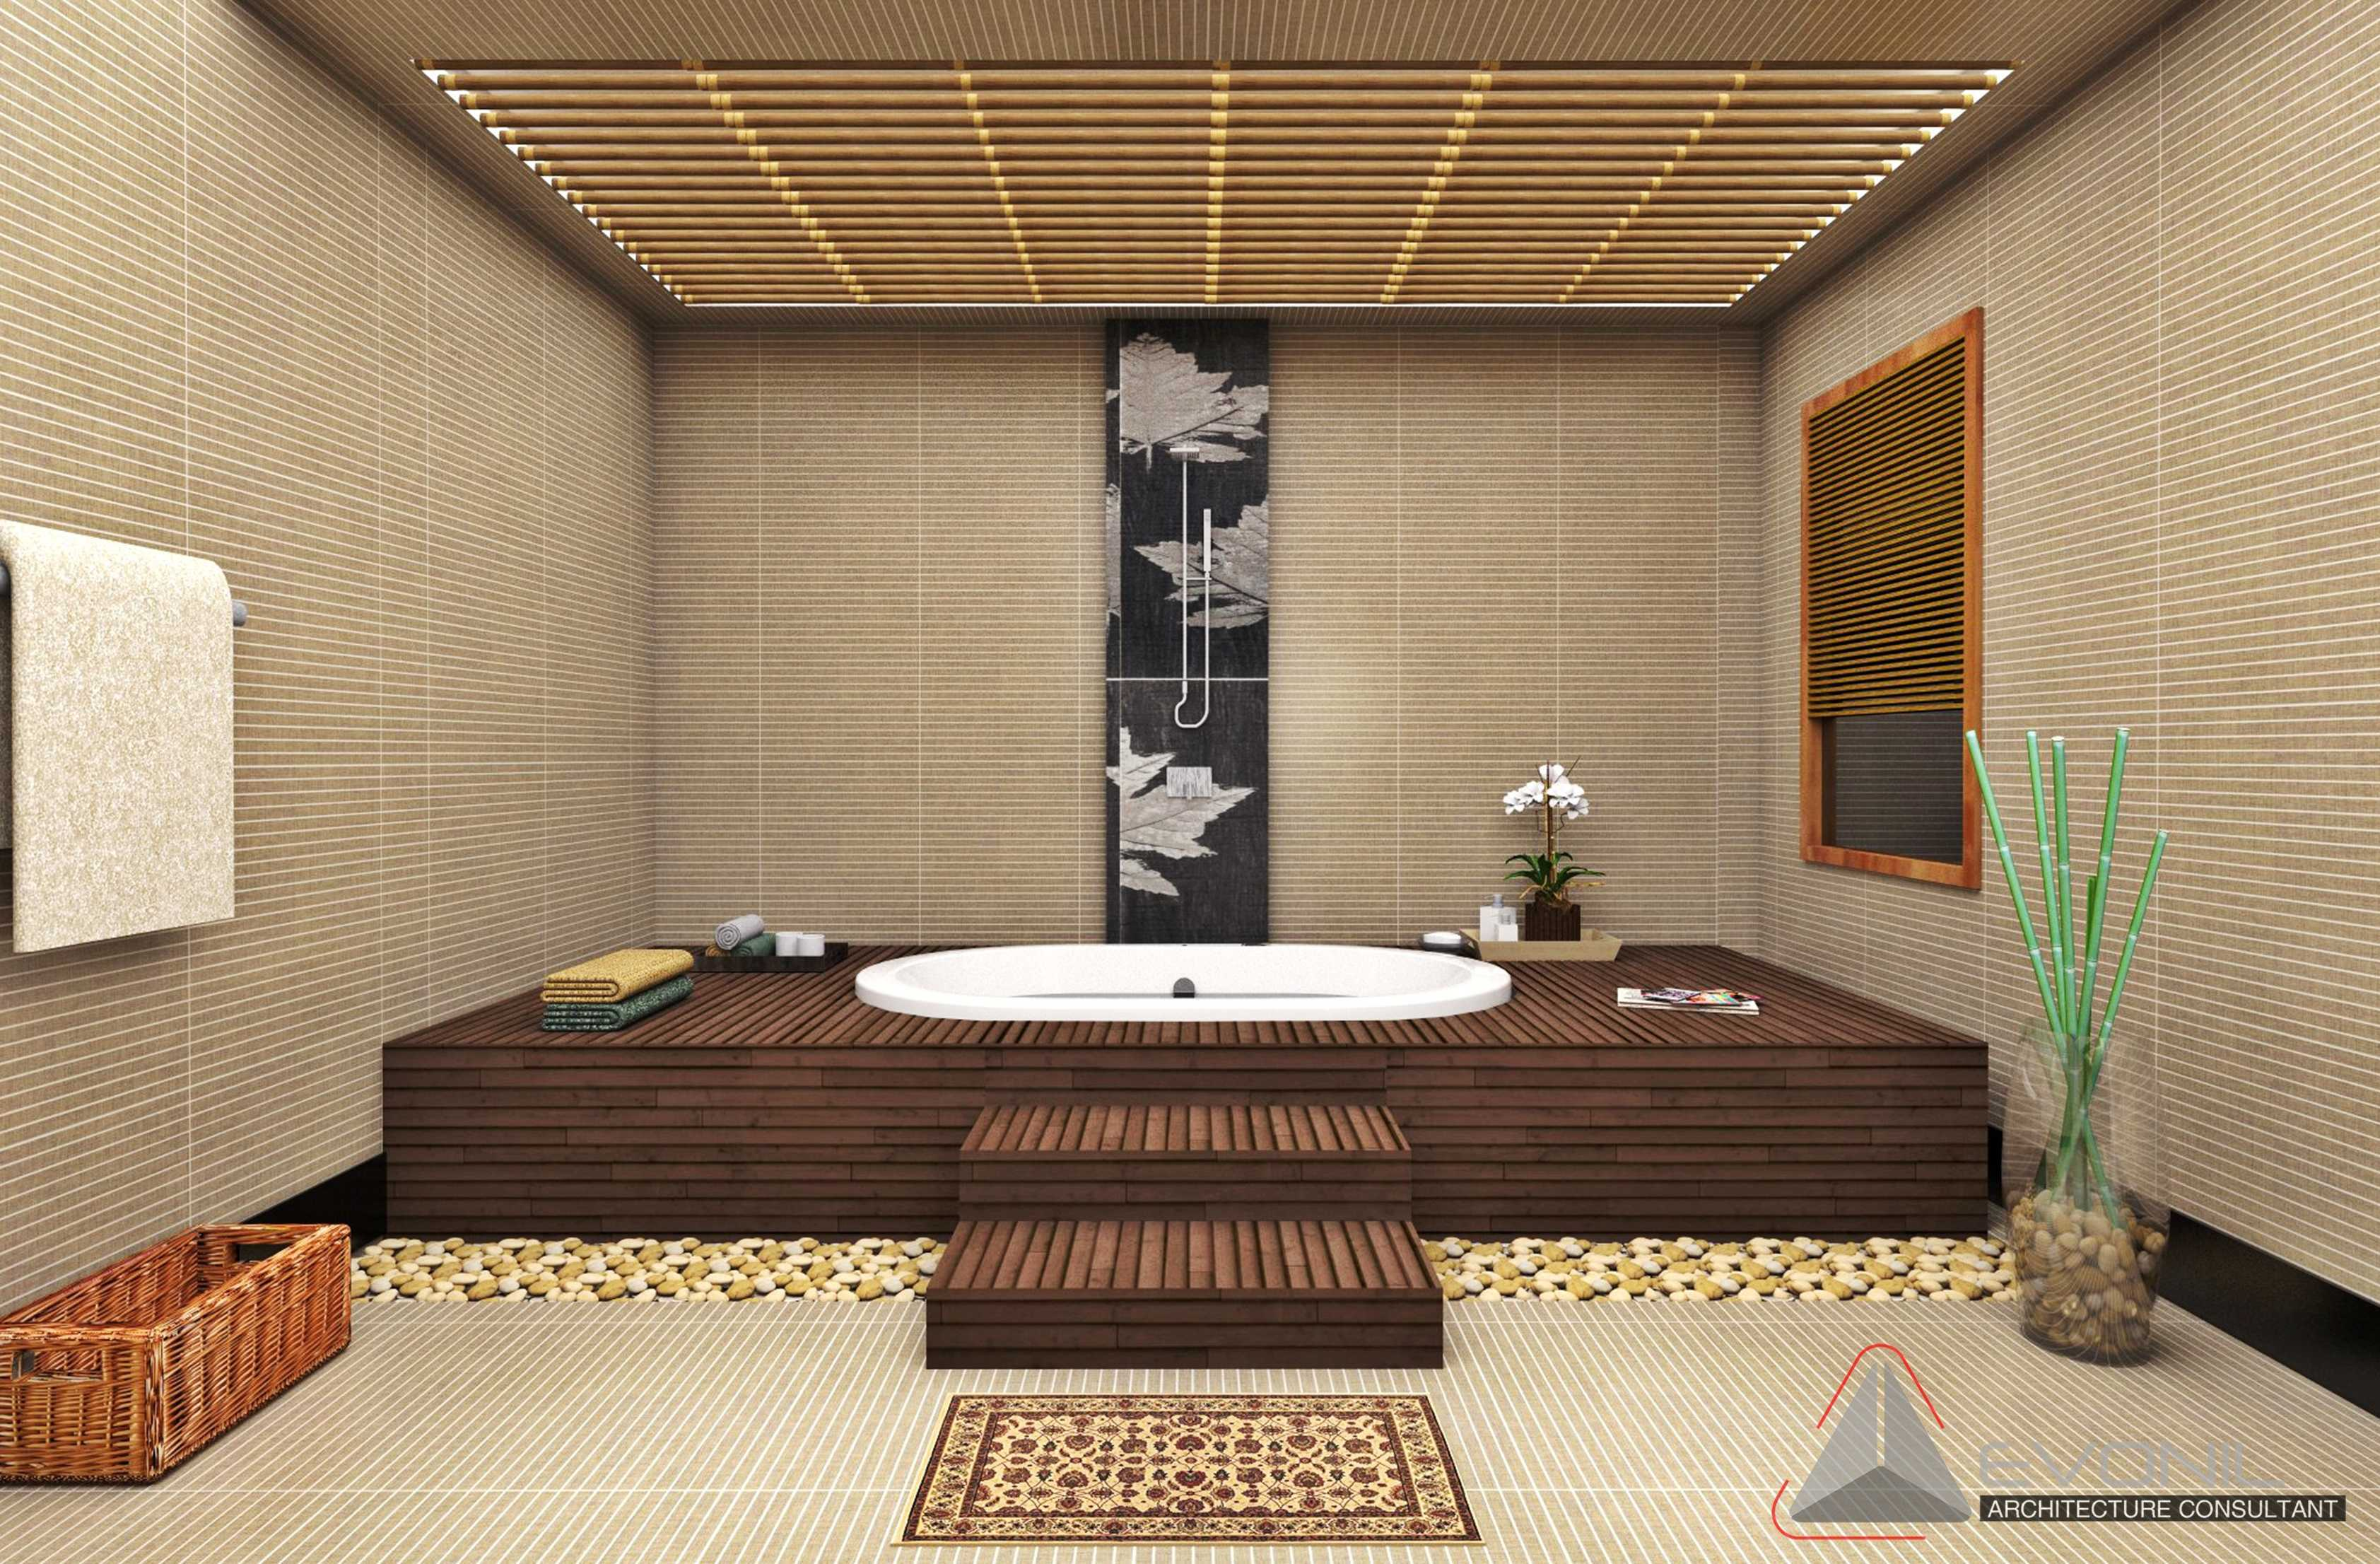 Evonil Architecture Residence Industri Jakarta, Indonesia Jakarta, Indonesia Bathroom-1St-Floor-Industri Asian  13014